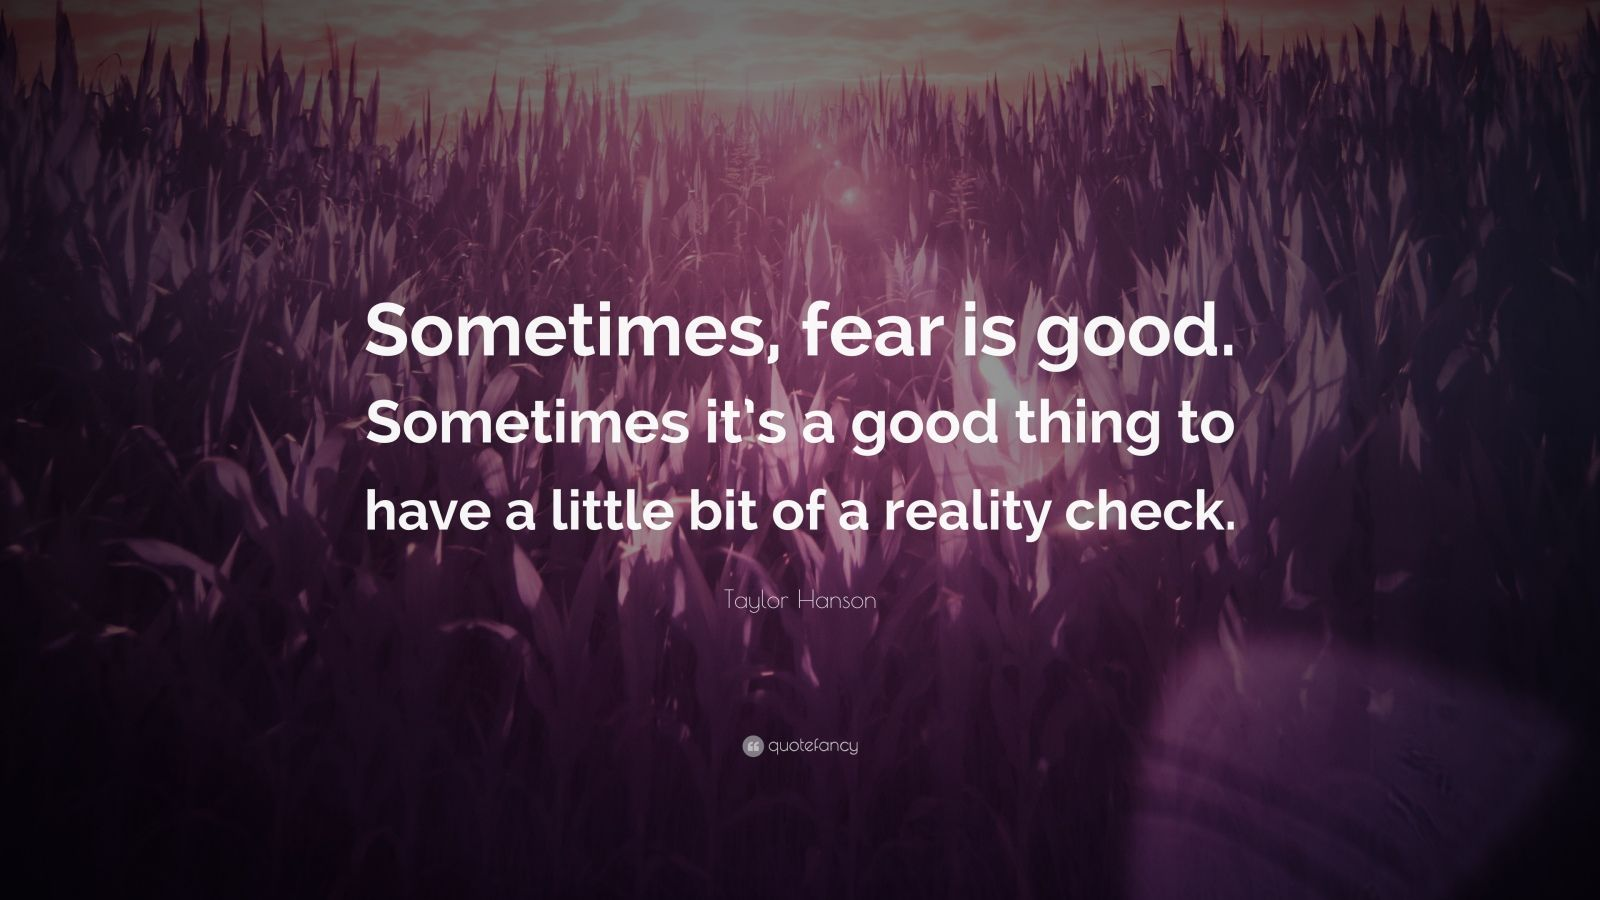 Swami Vivekananda Quotes Wallpaper Taylor Hanson Quote Sometimes Fear Is Good Sometimes